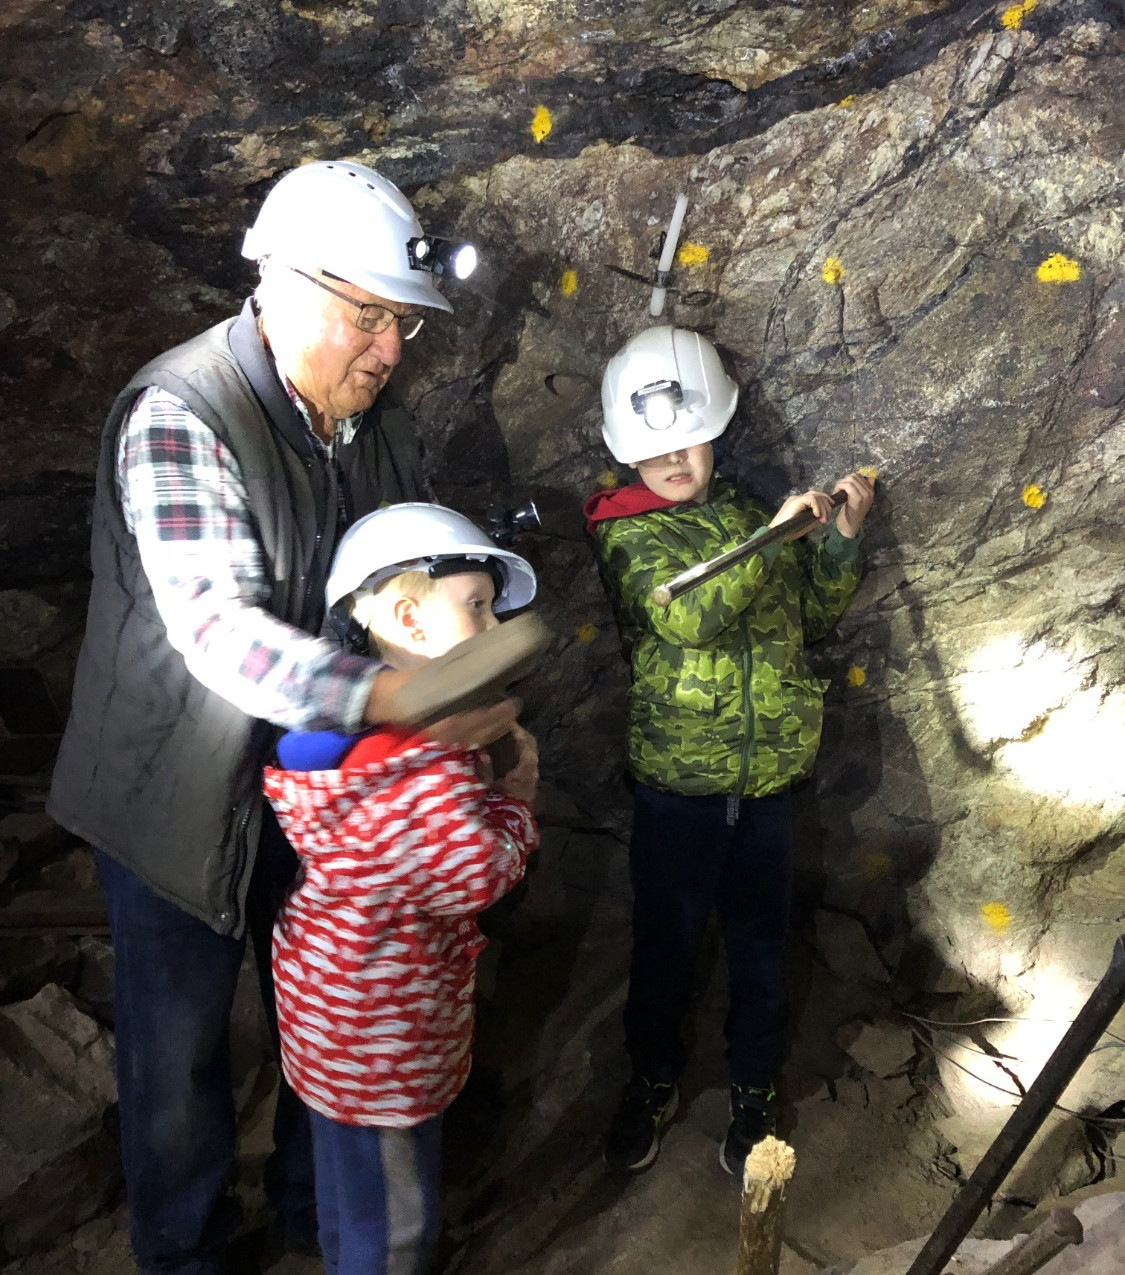 Travelling with kids mining